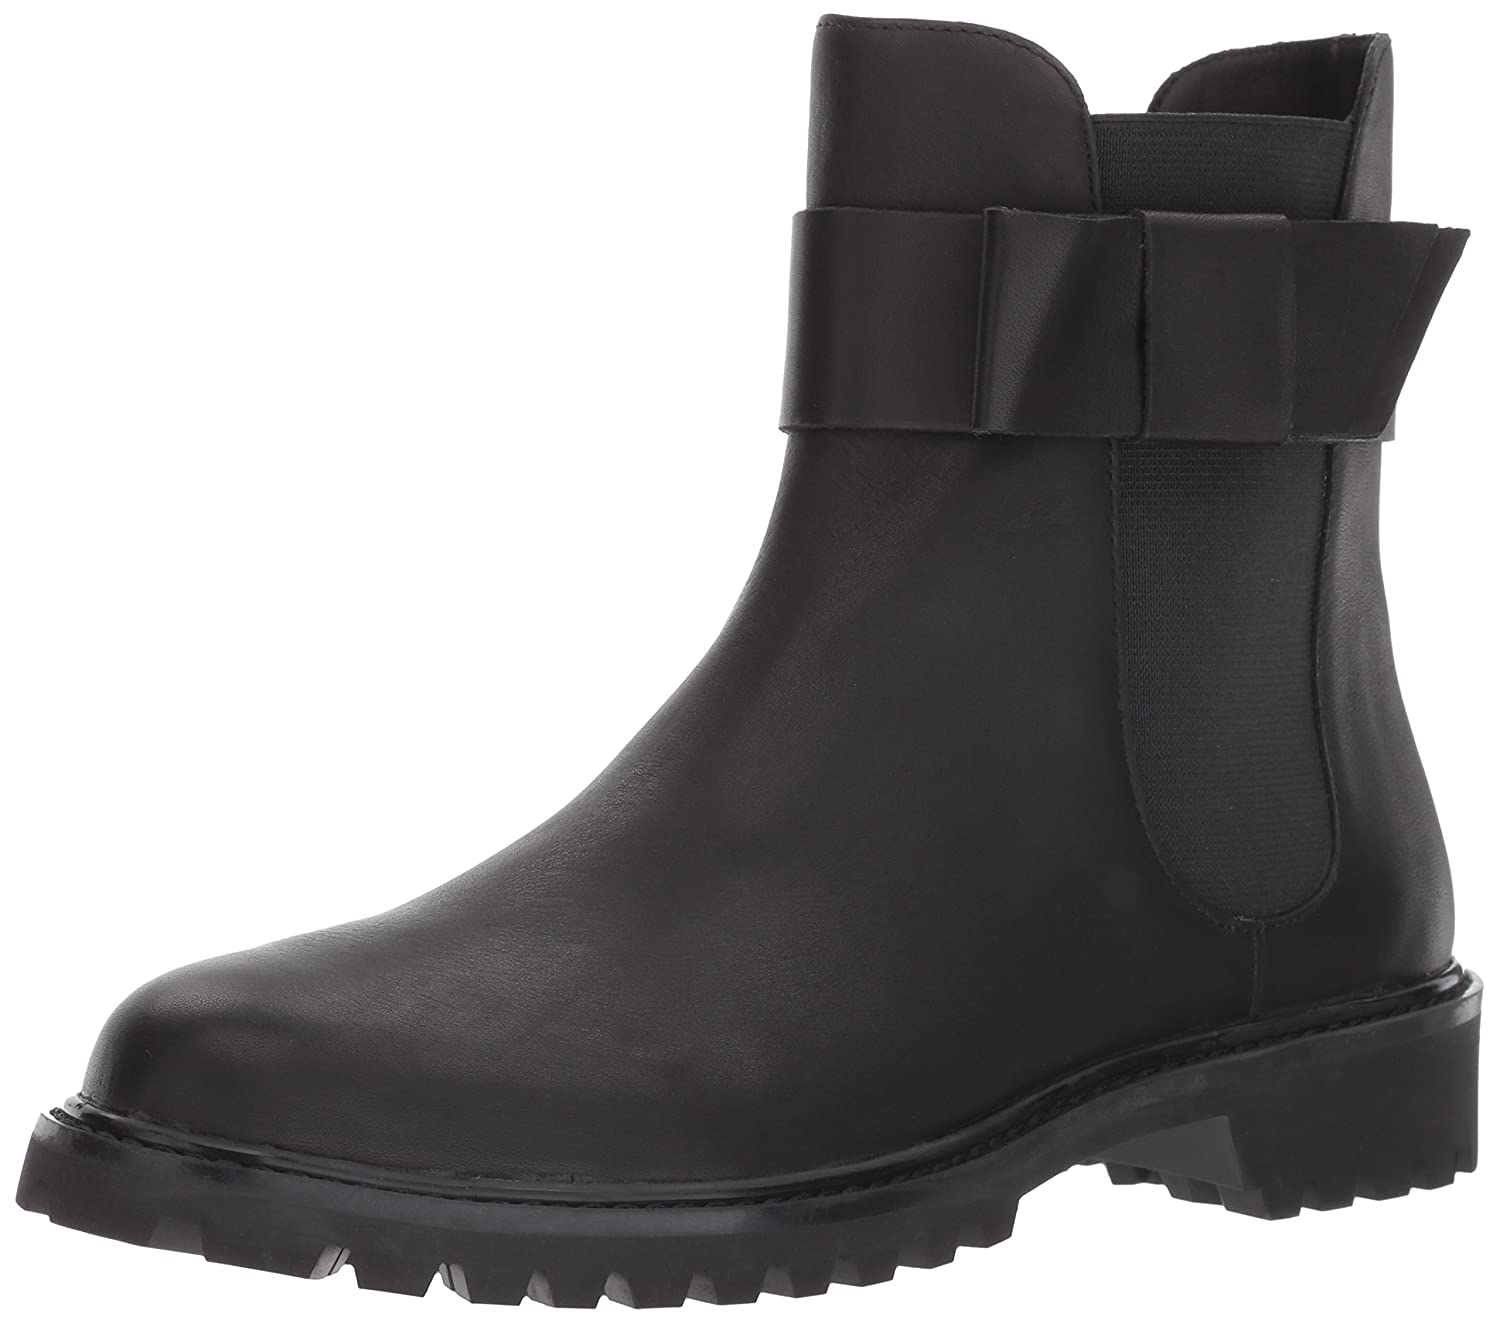 Joie Women's Hollie Ankle (8 Boot B0716JDCV2 38 M EU (8 Ankle US)|Black fa721f